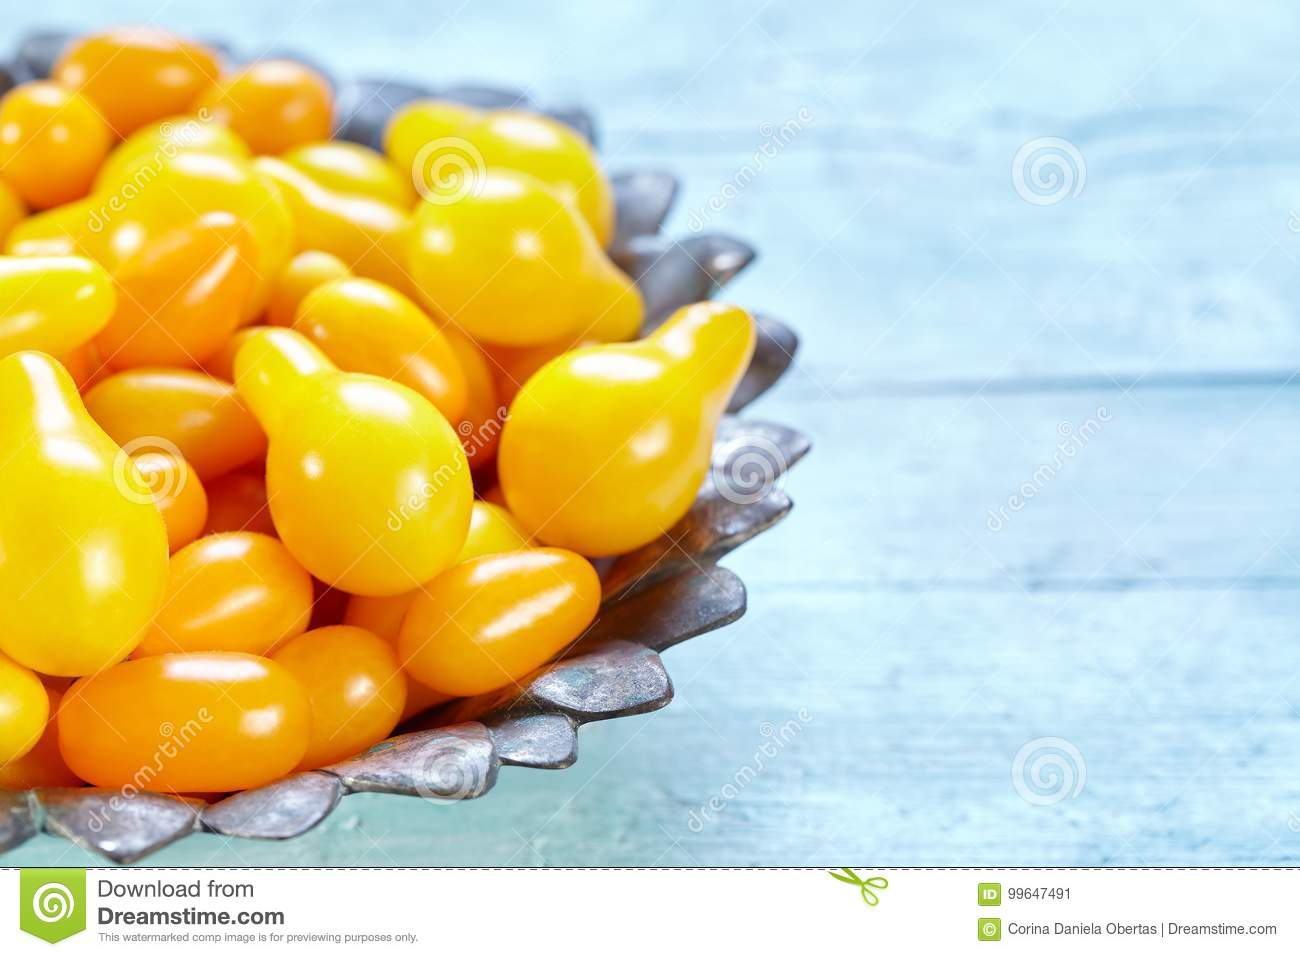 Yellow Pear And Datterino Heirloom Cherry Tomatoes